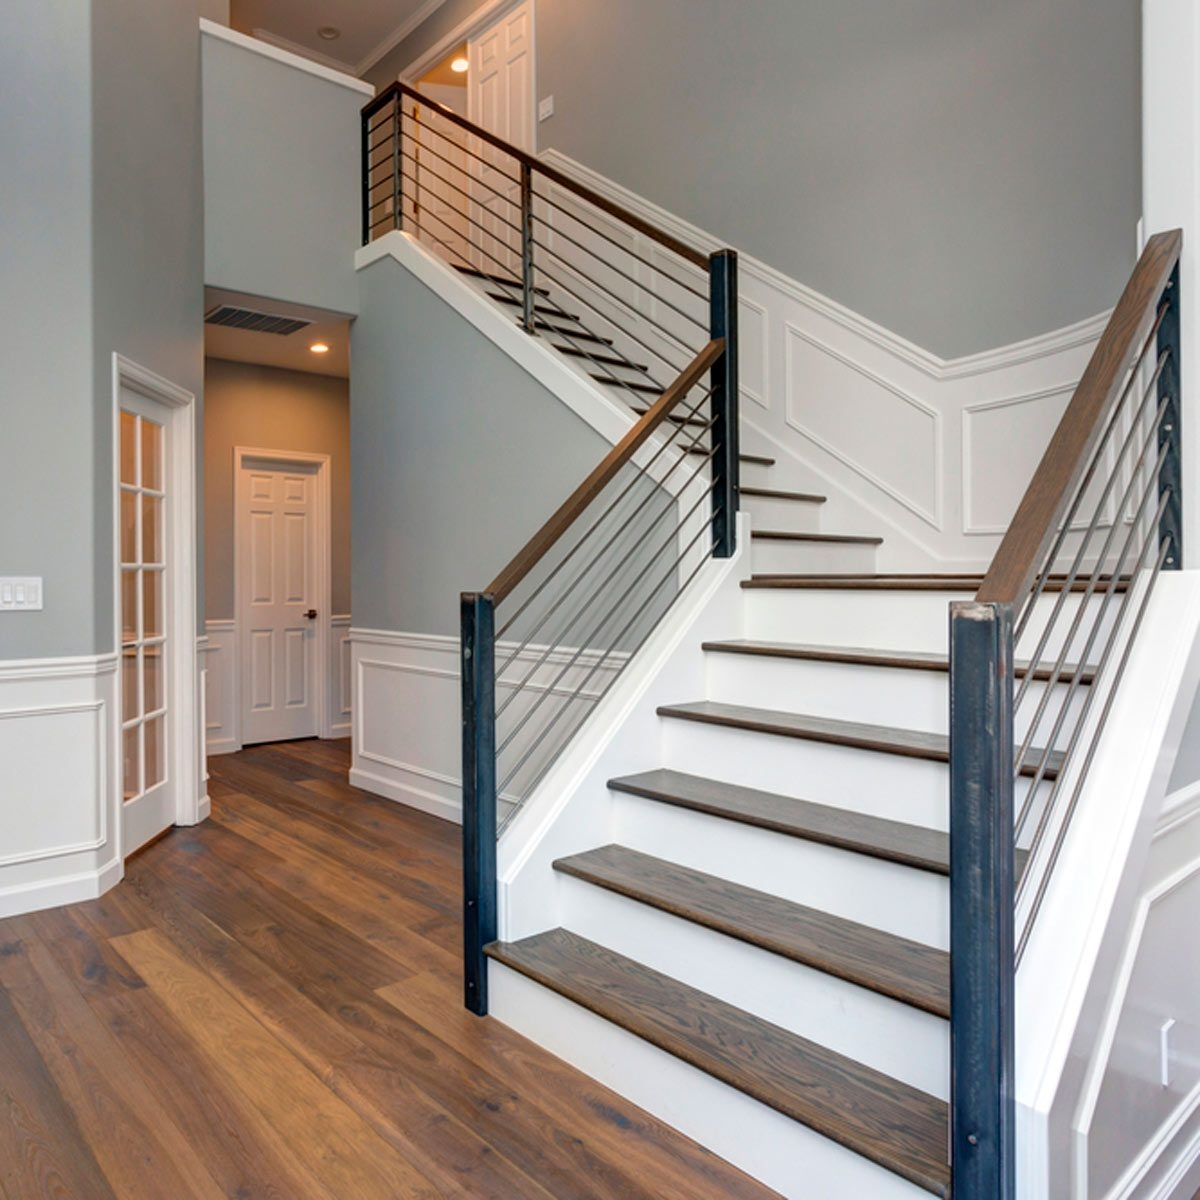 10 Ways To Freshen Up Outdated Banisters Family Handyman | Black Horizontal Stair Railing | Room | Split Entry | Steel | Modern | Metal